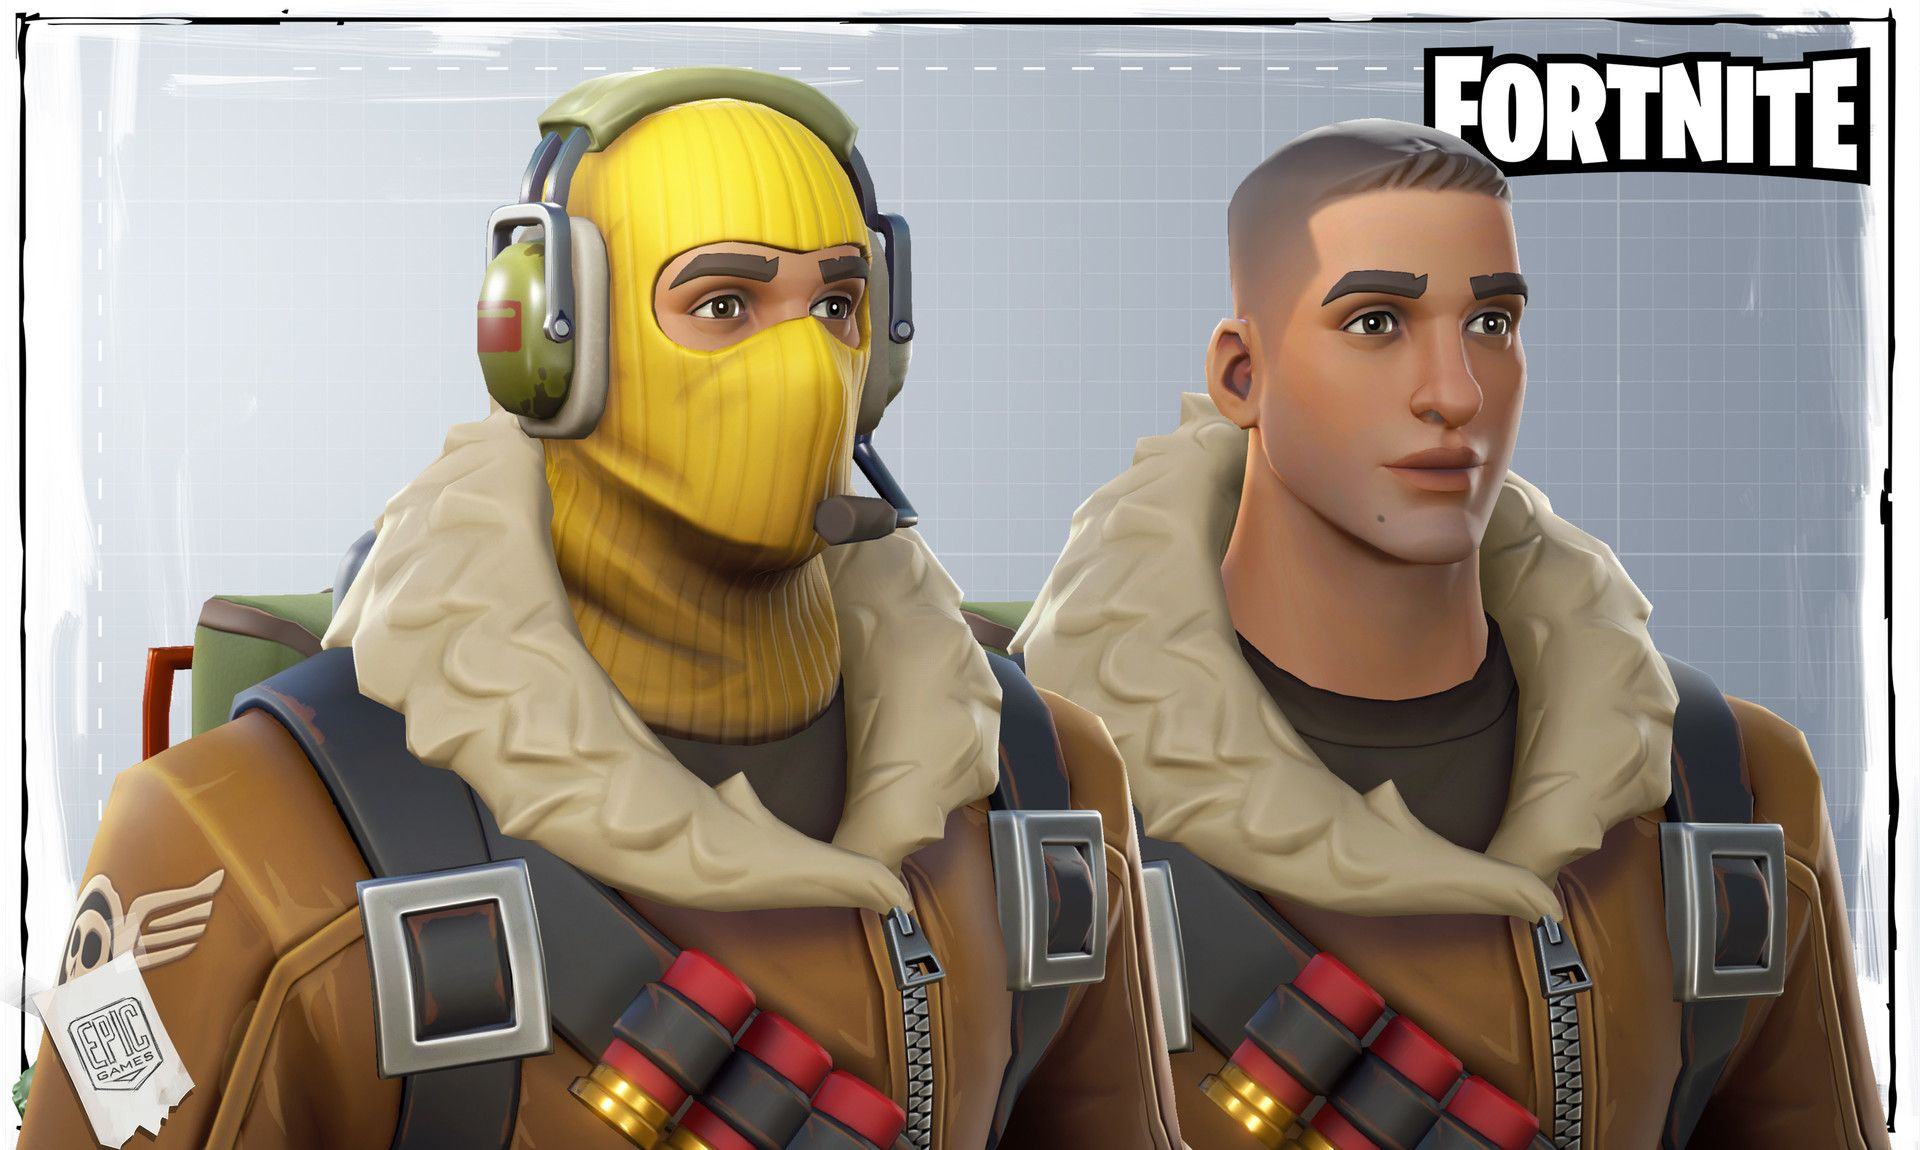 This Was Our Very First Task On Epic Games Fortnite A Skin For The